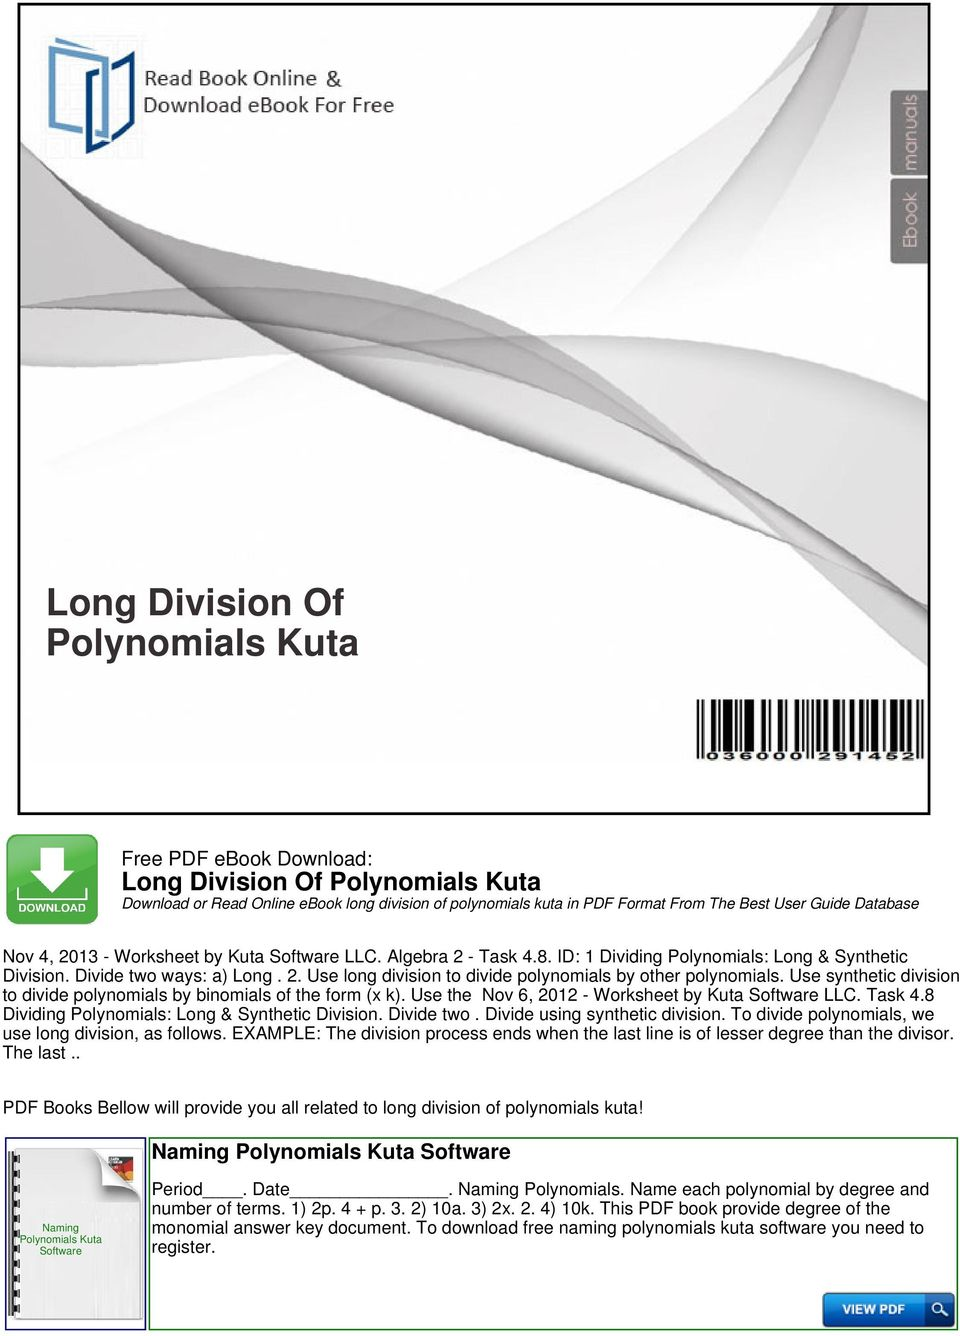 Long Division Of Polynomials Kuta Pdf